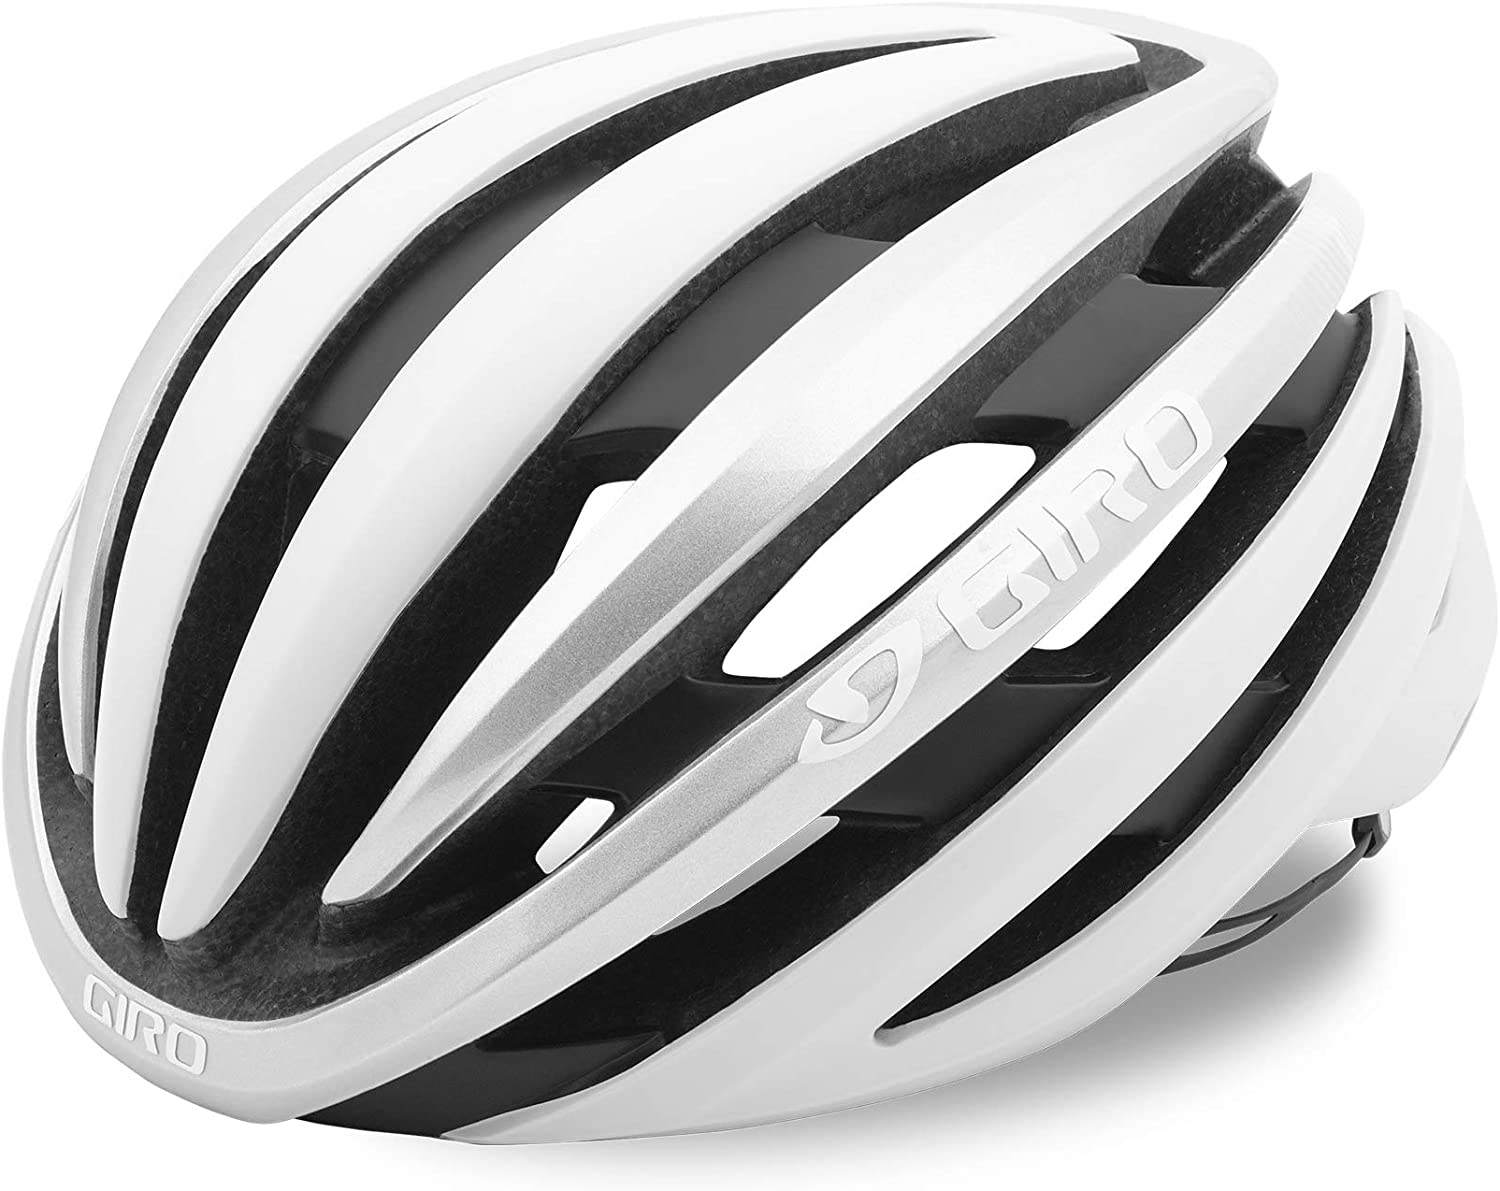 Giro Cinder MIPS Adult Road Max 41% OFF Cycling 59-63 Limited price sale Helmet cm Large - M